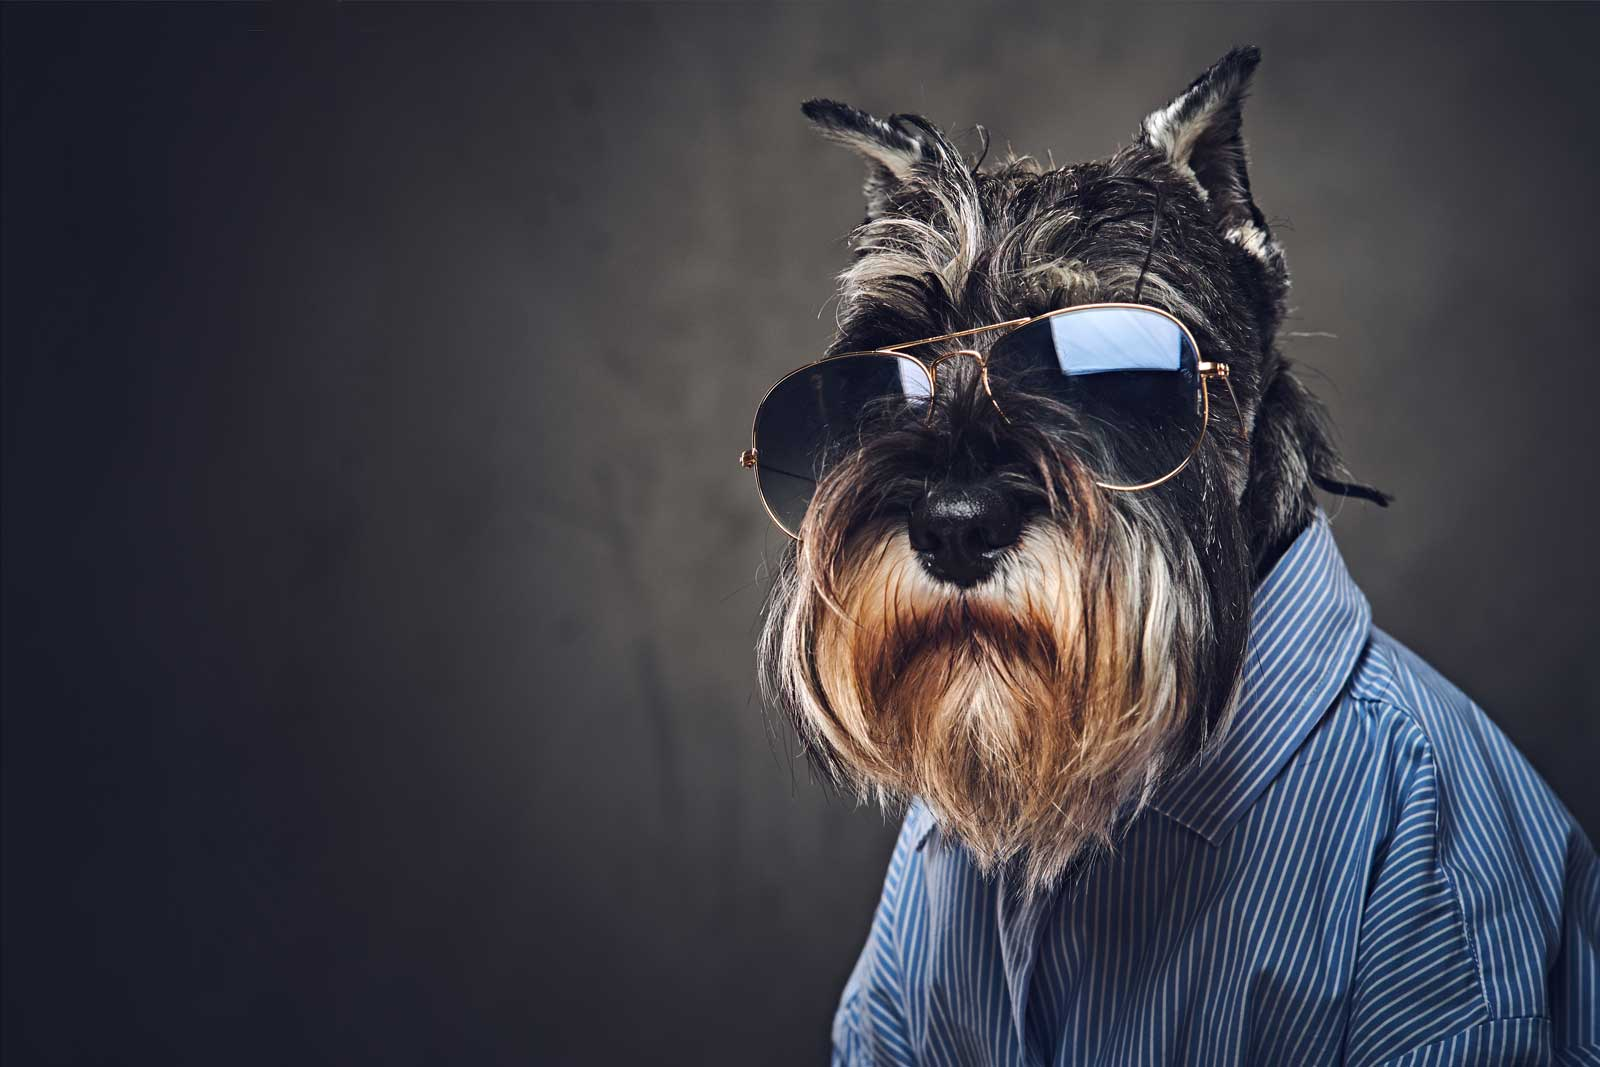 Picture of a Dog with Shades